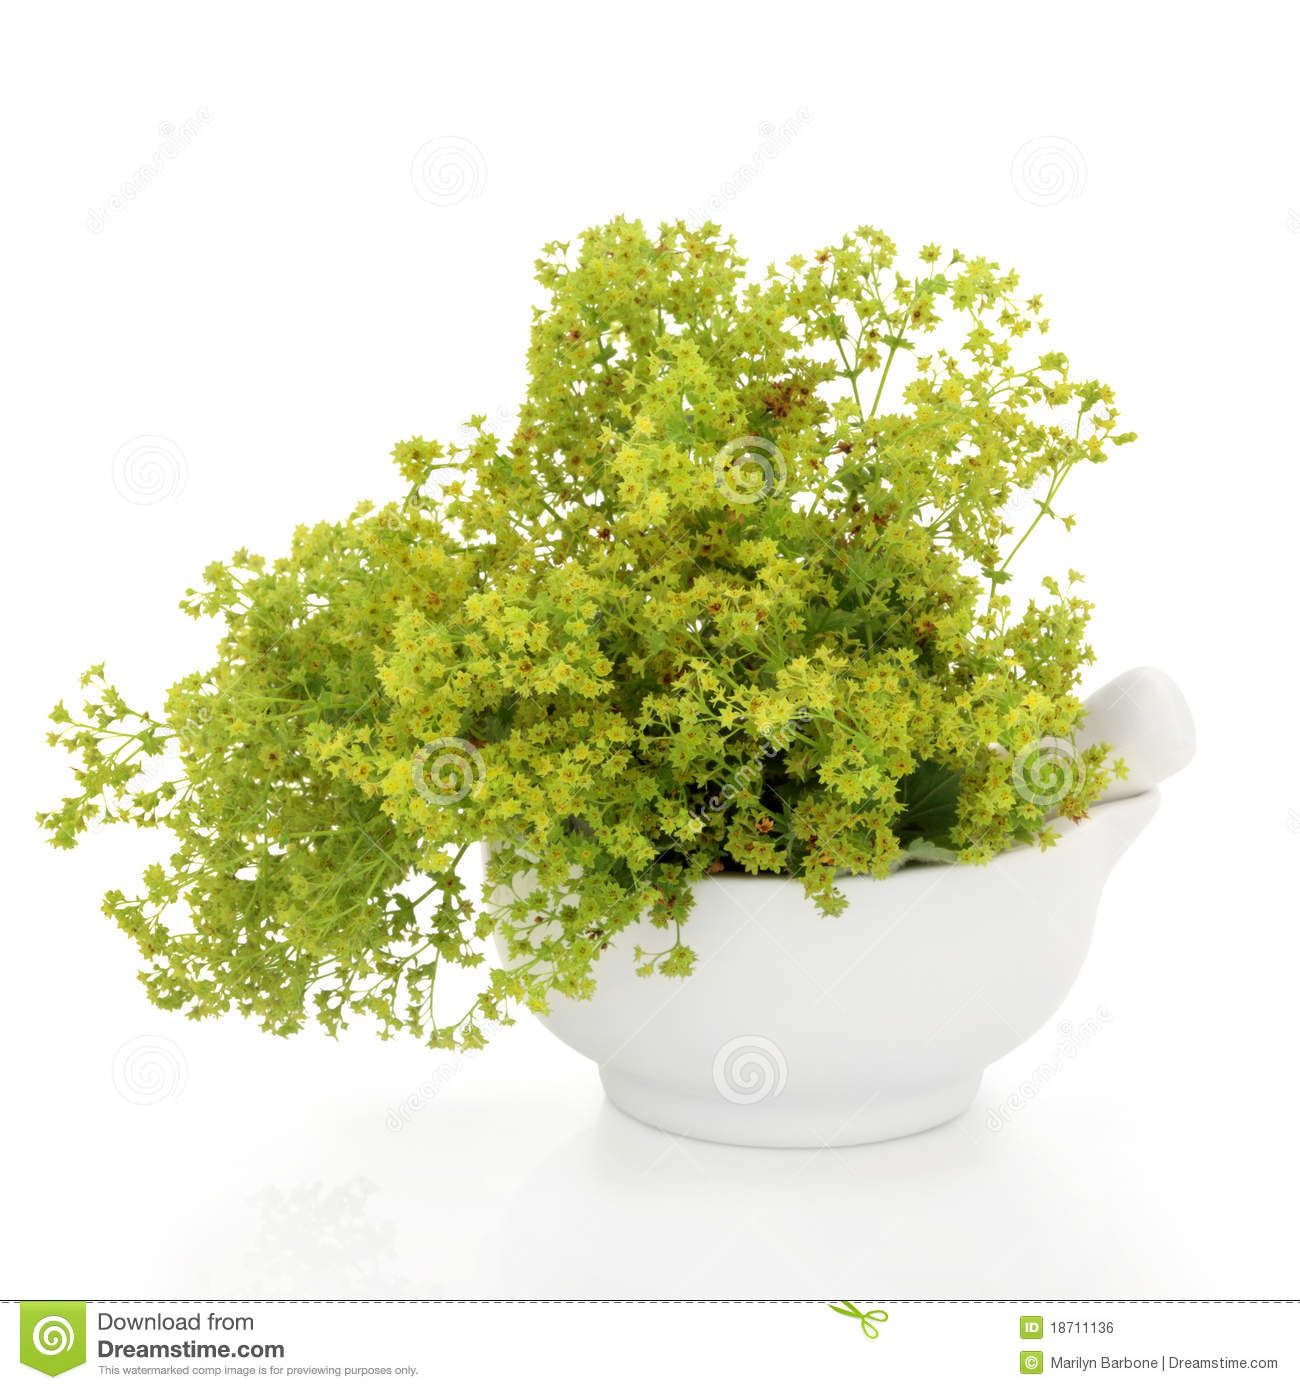 Ladys mantle herb in a porcelain mortar with pestle  over white    Ladys Mantle